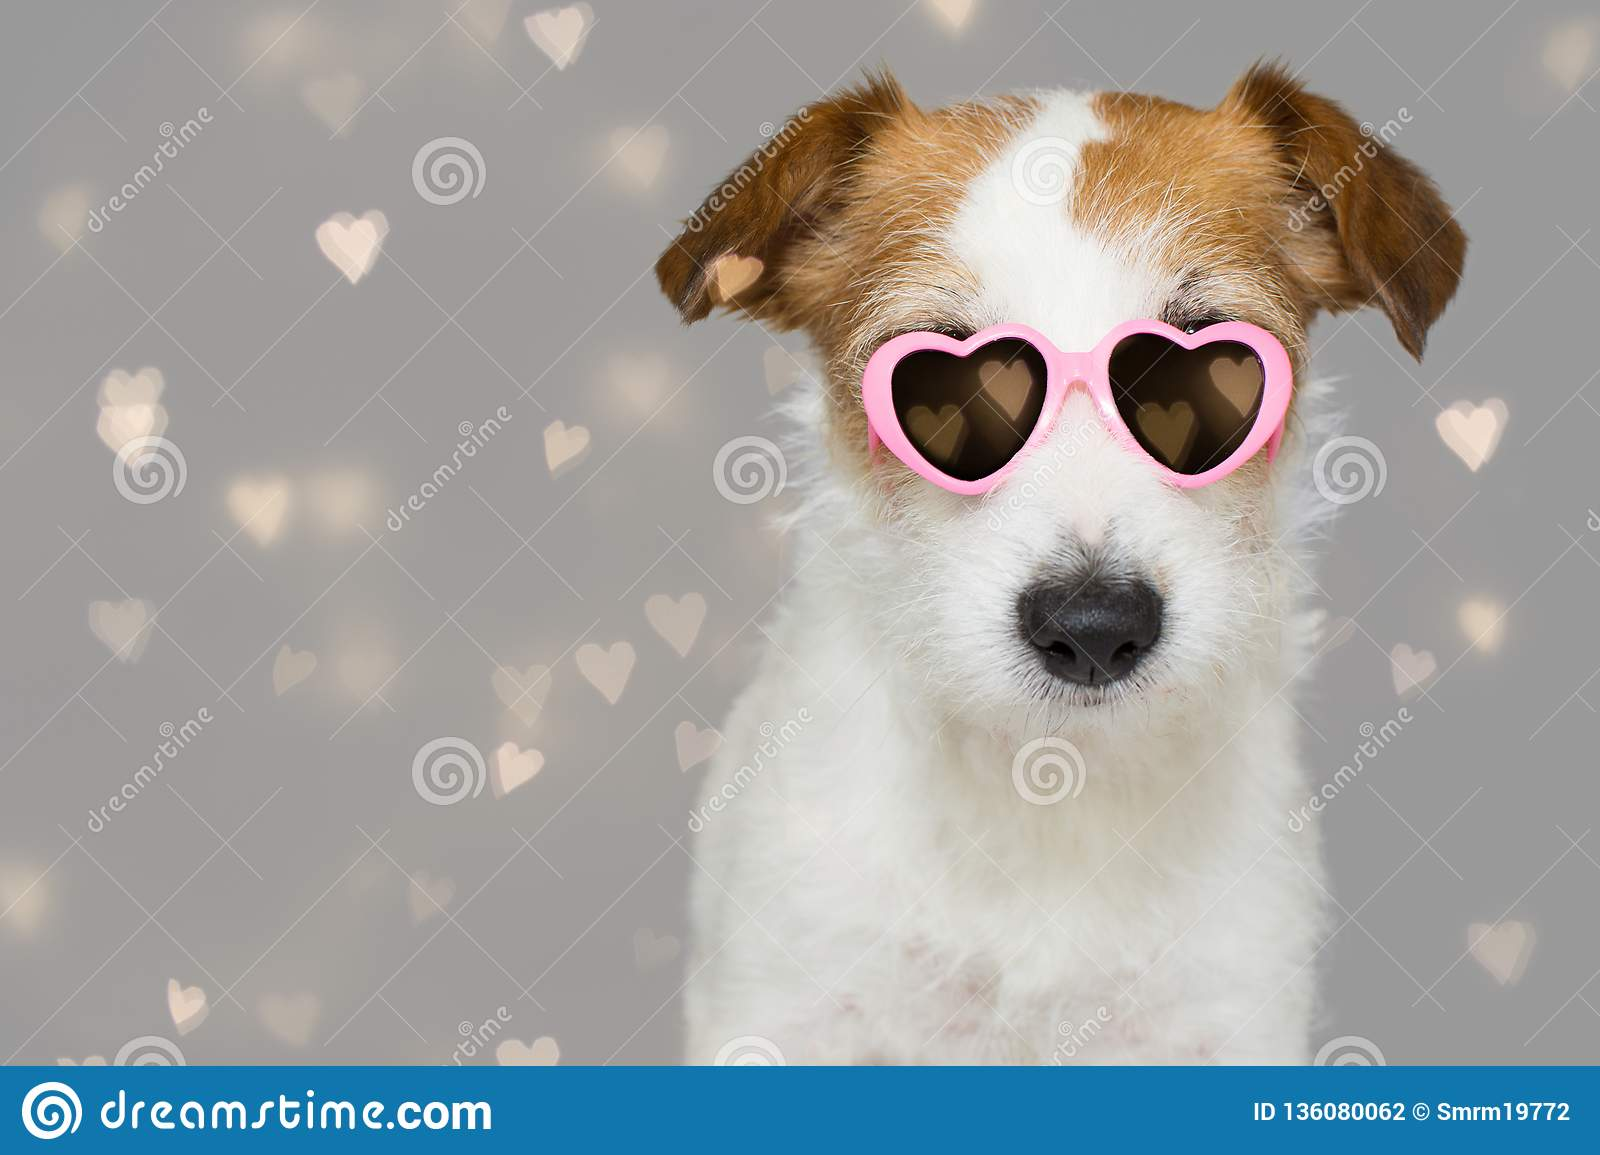 DOG LOVE VALENTINE DAYS. CUTE JACK RUSSELL WEARING PINK EYE SUNGLASSES WITH HEART SHAPE. ISOLATED AGAINST GRAY BACKGROUND WITH